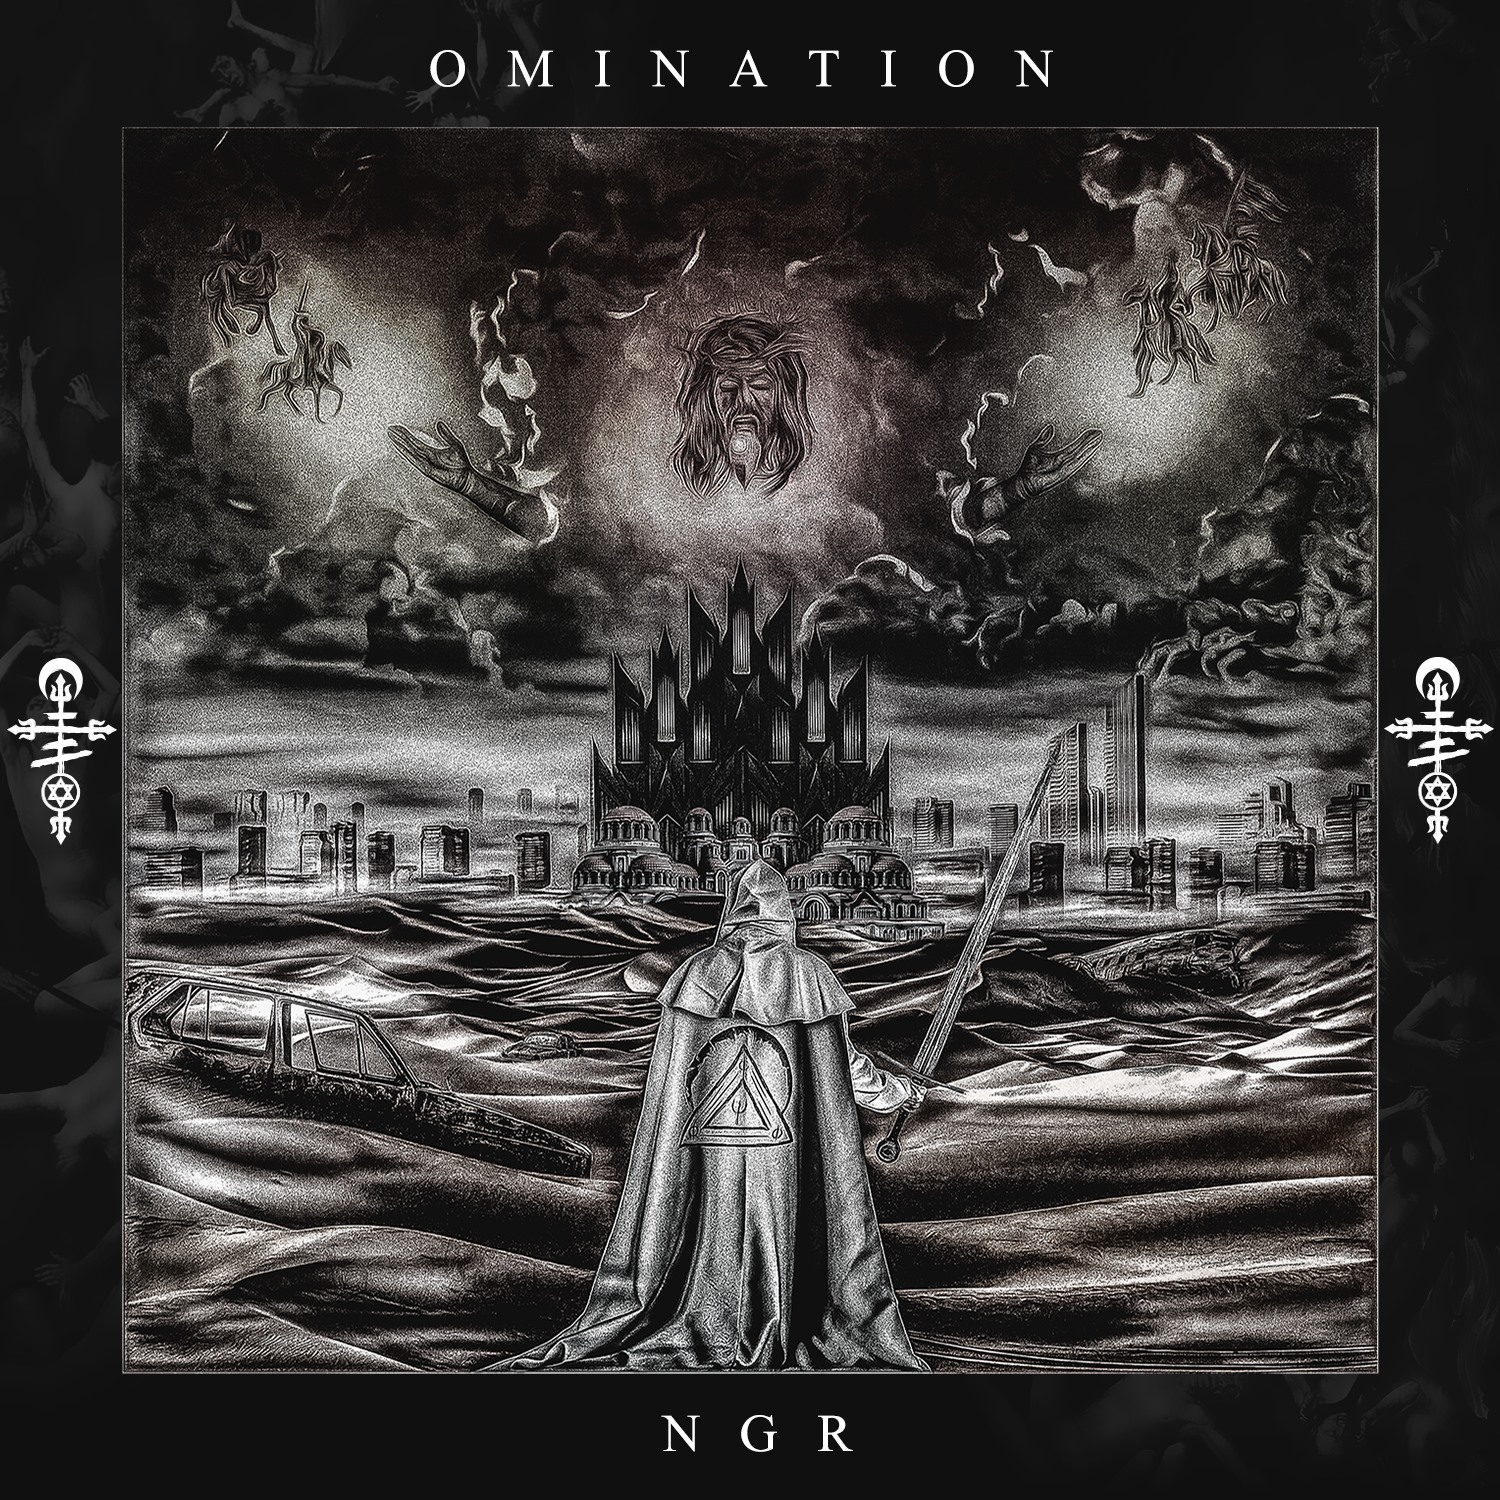 Omination NGR album cover artwork